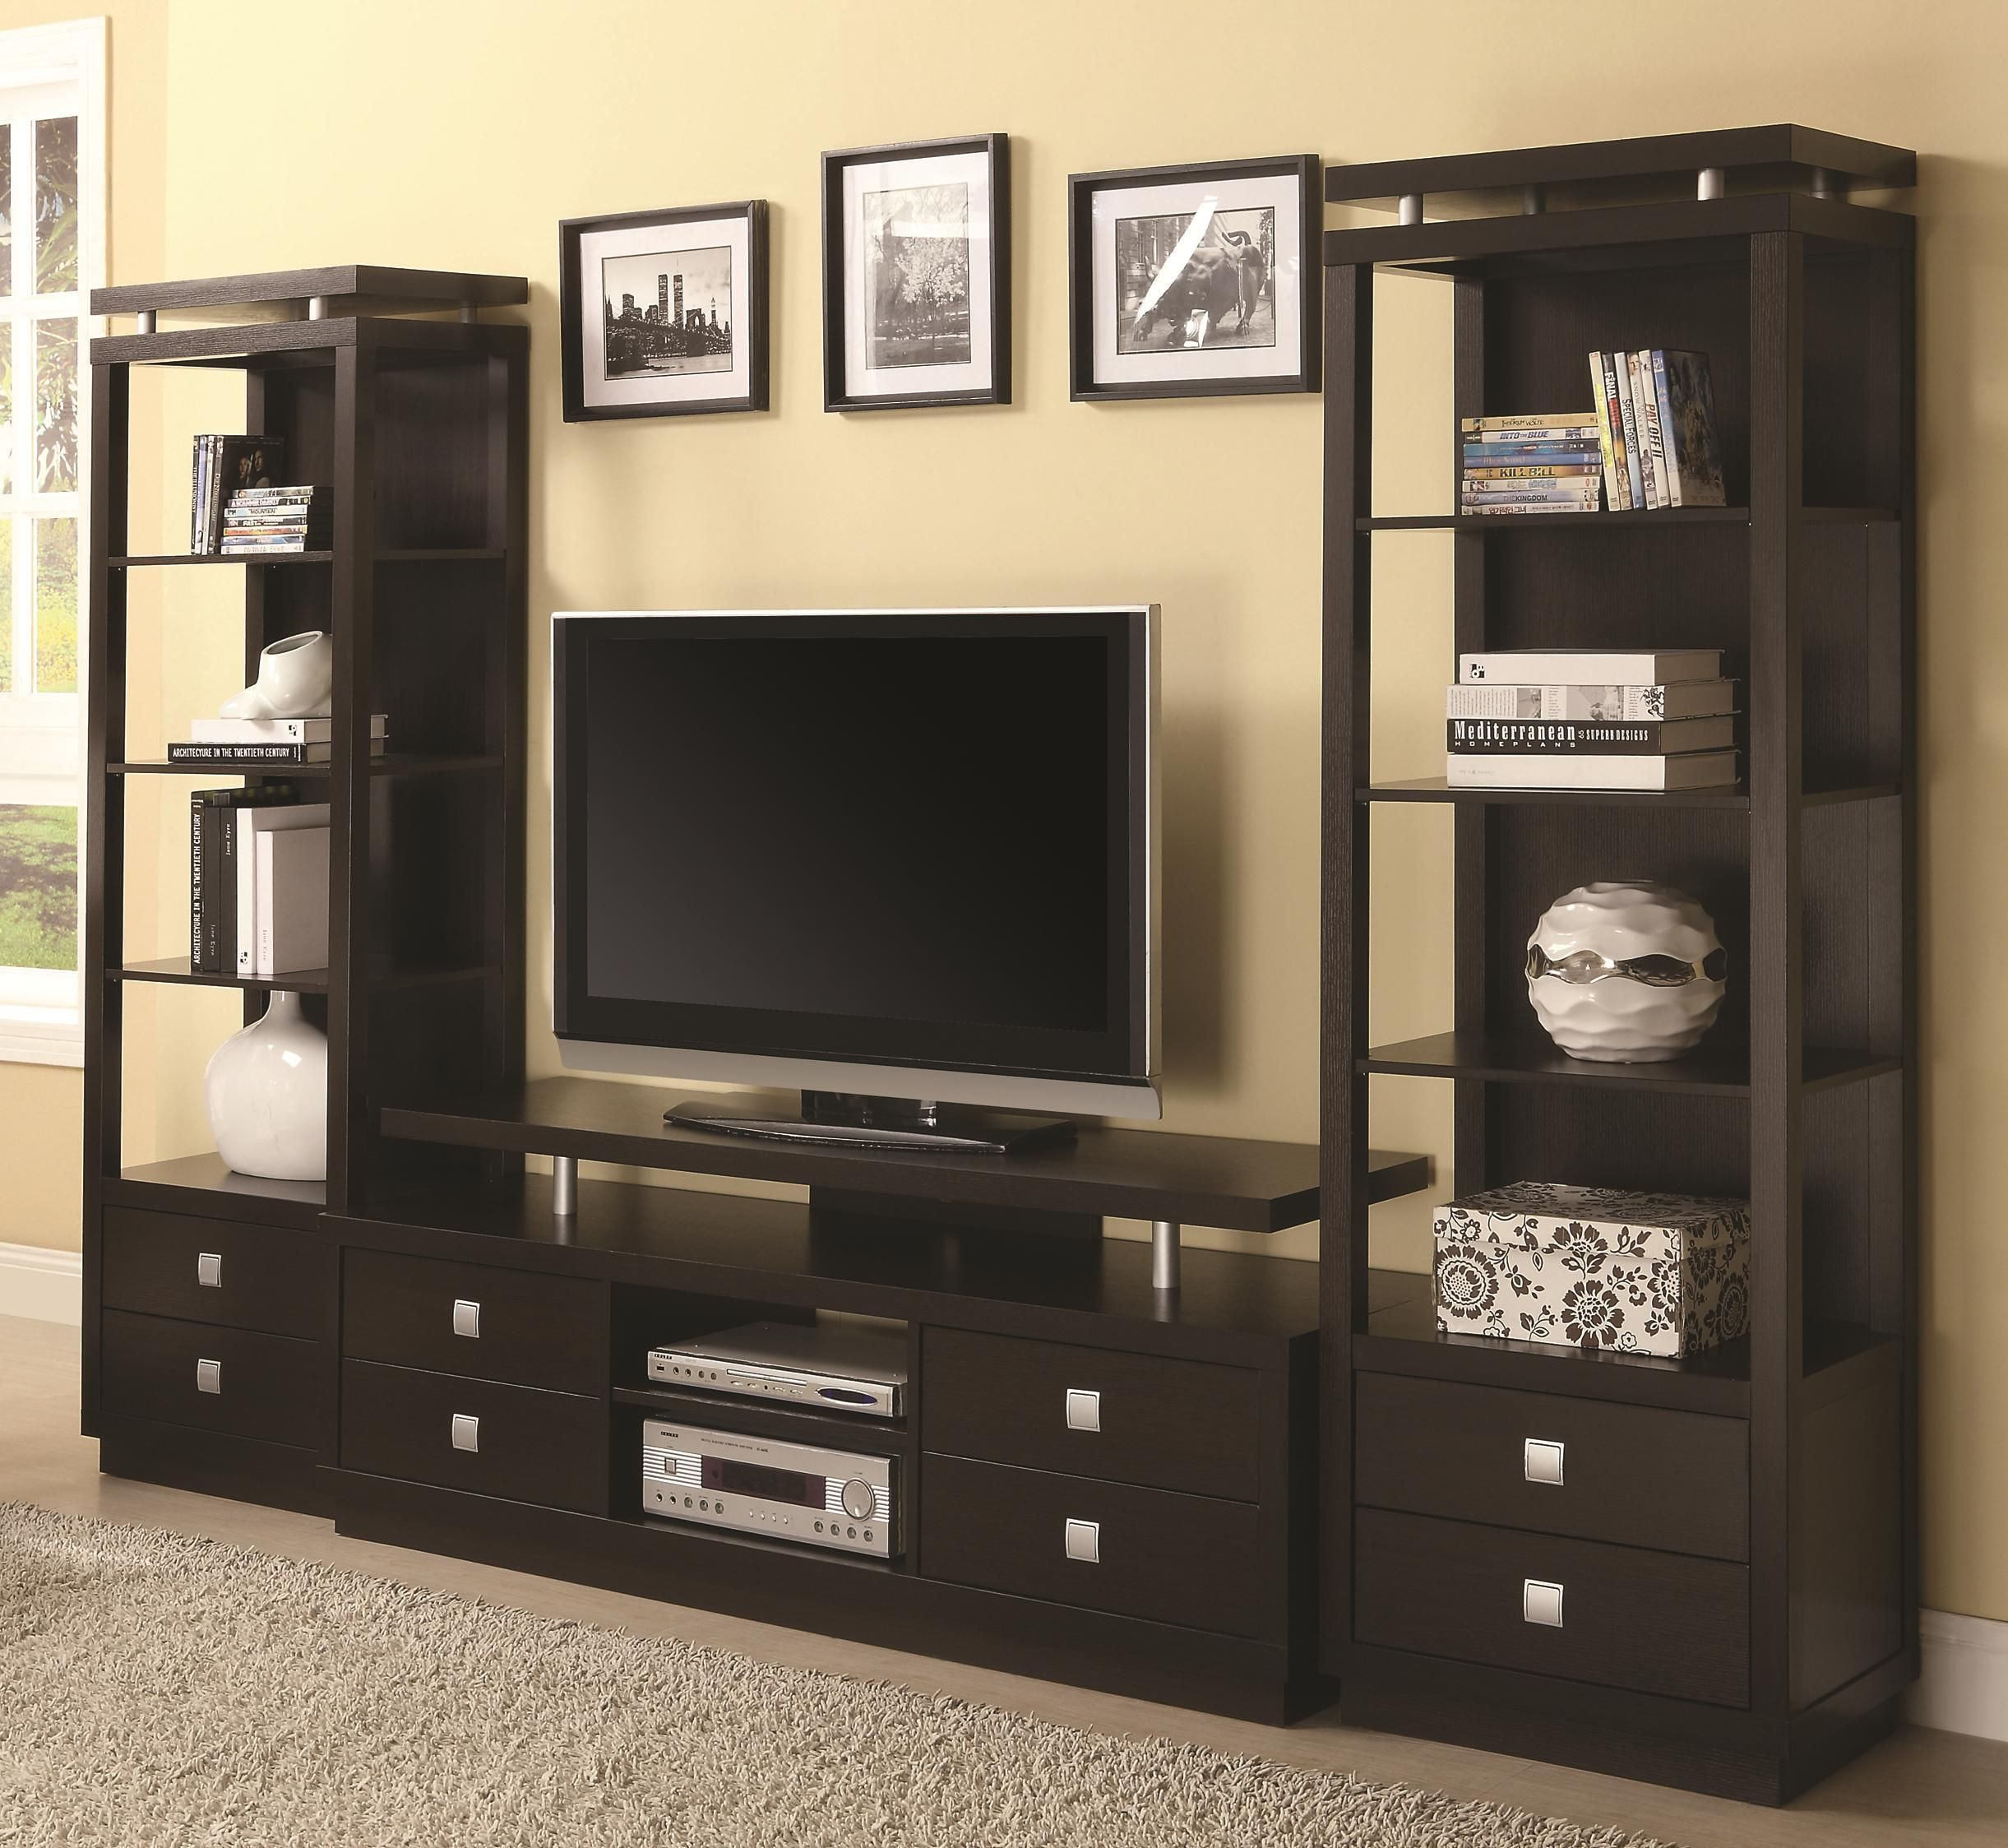 wall unit living room furniture. room mounted wall units living unit furniture